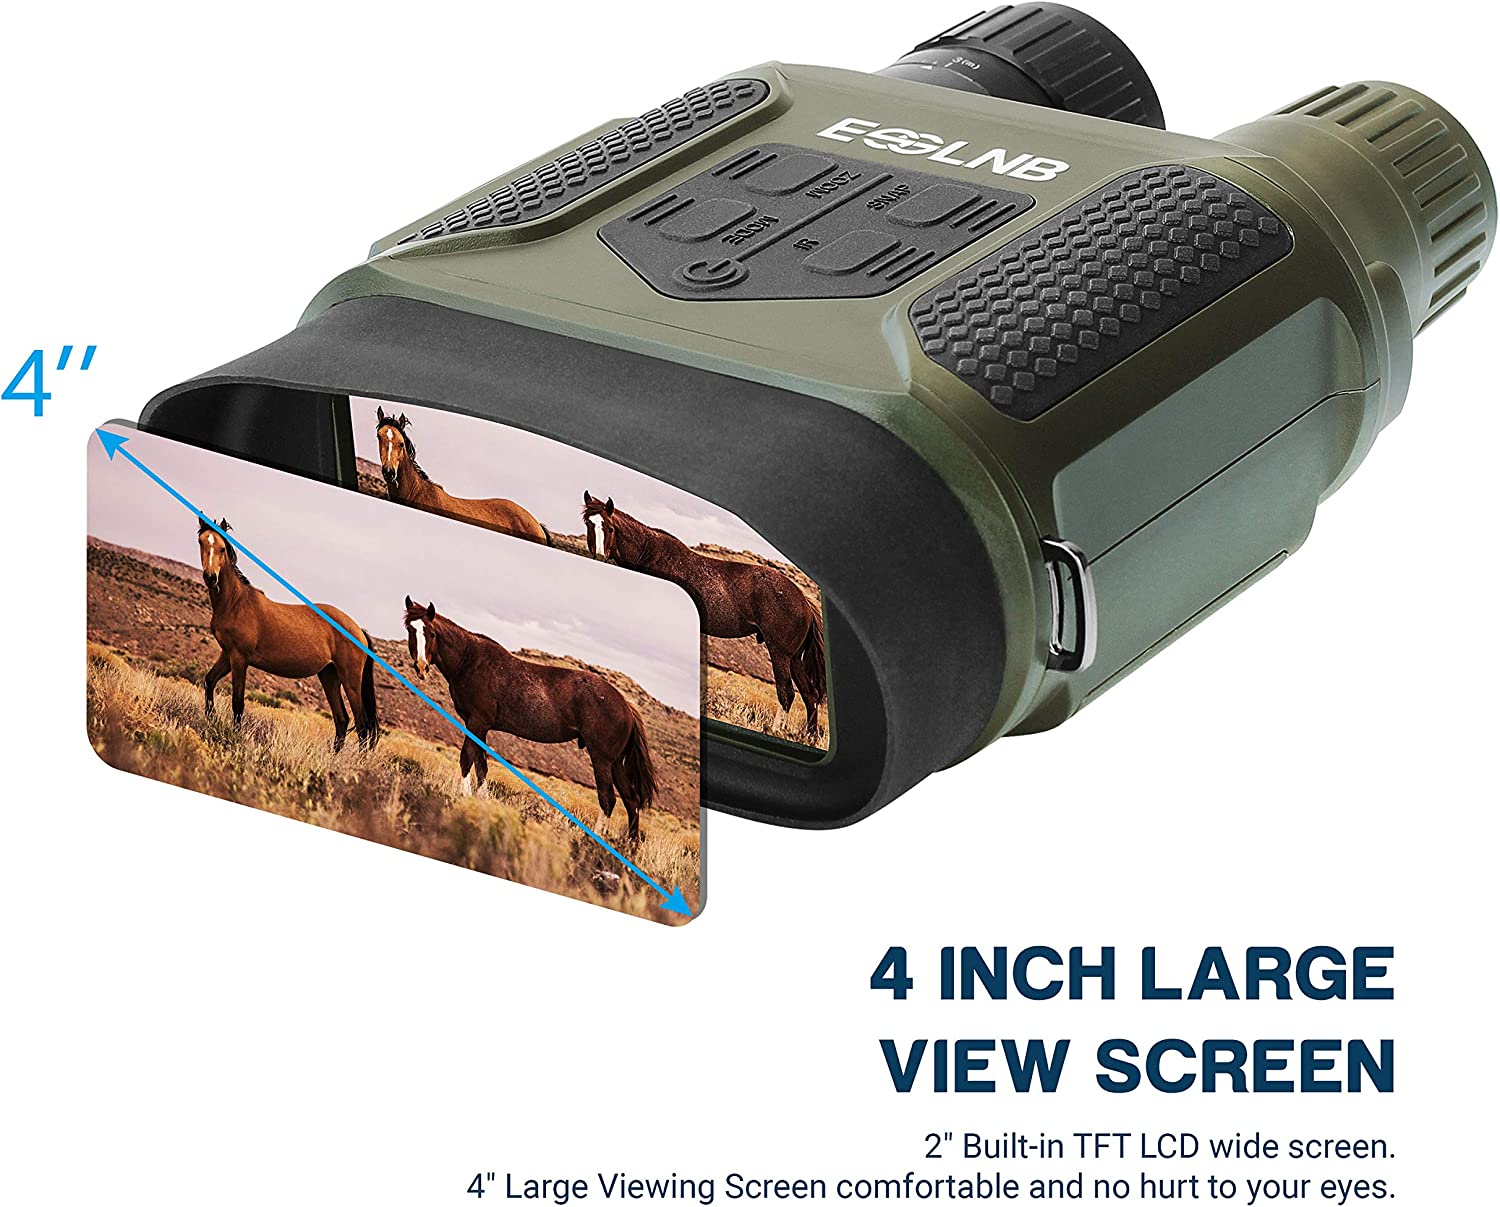 ESSLNB Night Vision Binoculars 1300ft Digital Night Vision Scope 7×31 Infrared Night Vision Hunting Binocular with 2 TFT LCD and 8GB TF Card Photo Camera Video Recorder Playback Function